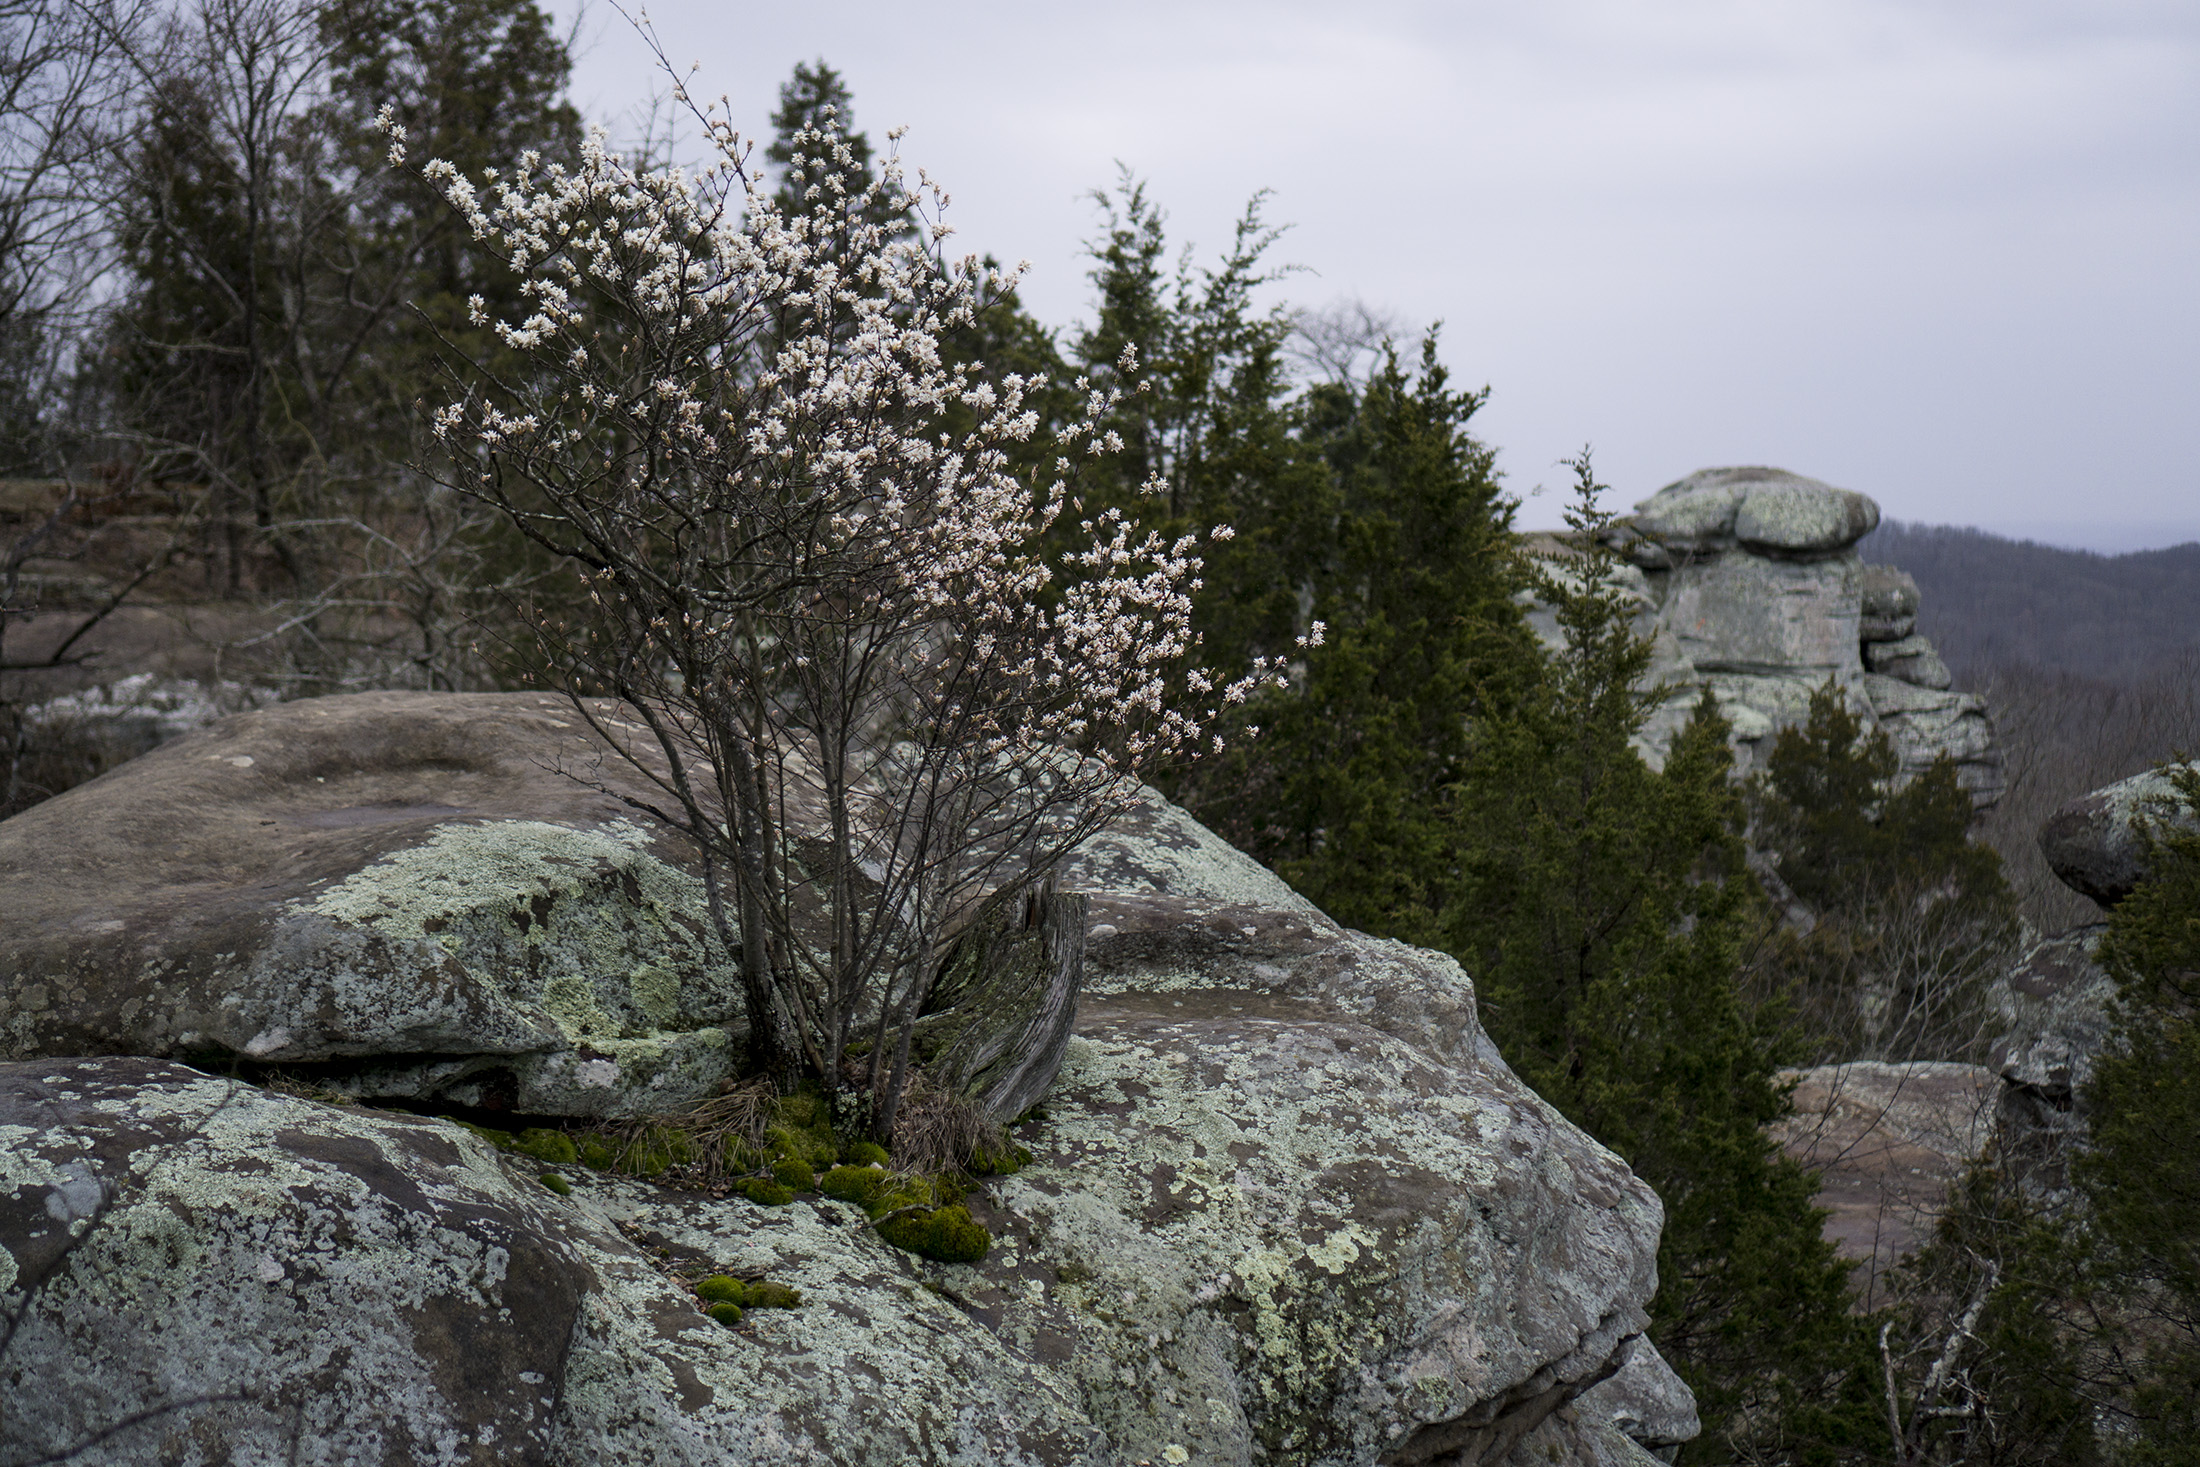 Flowering tree in spring with Garden of the Gods in background, Shawnee National Forest, IL / Darker than Green